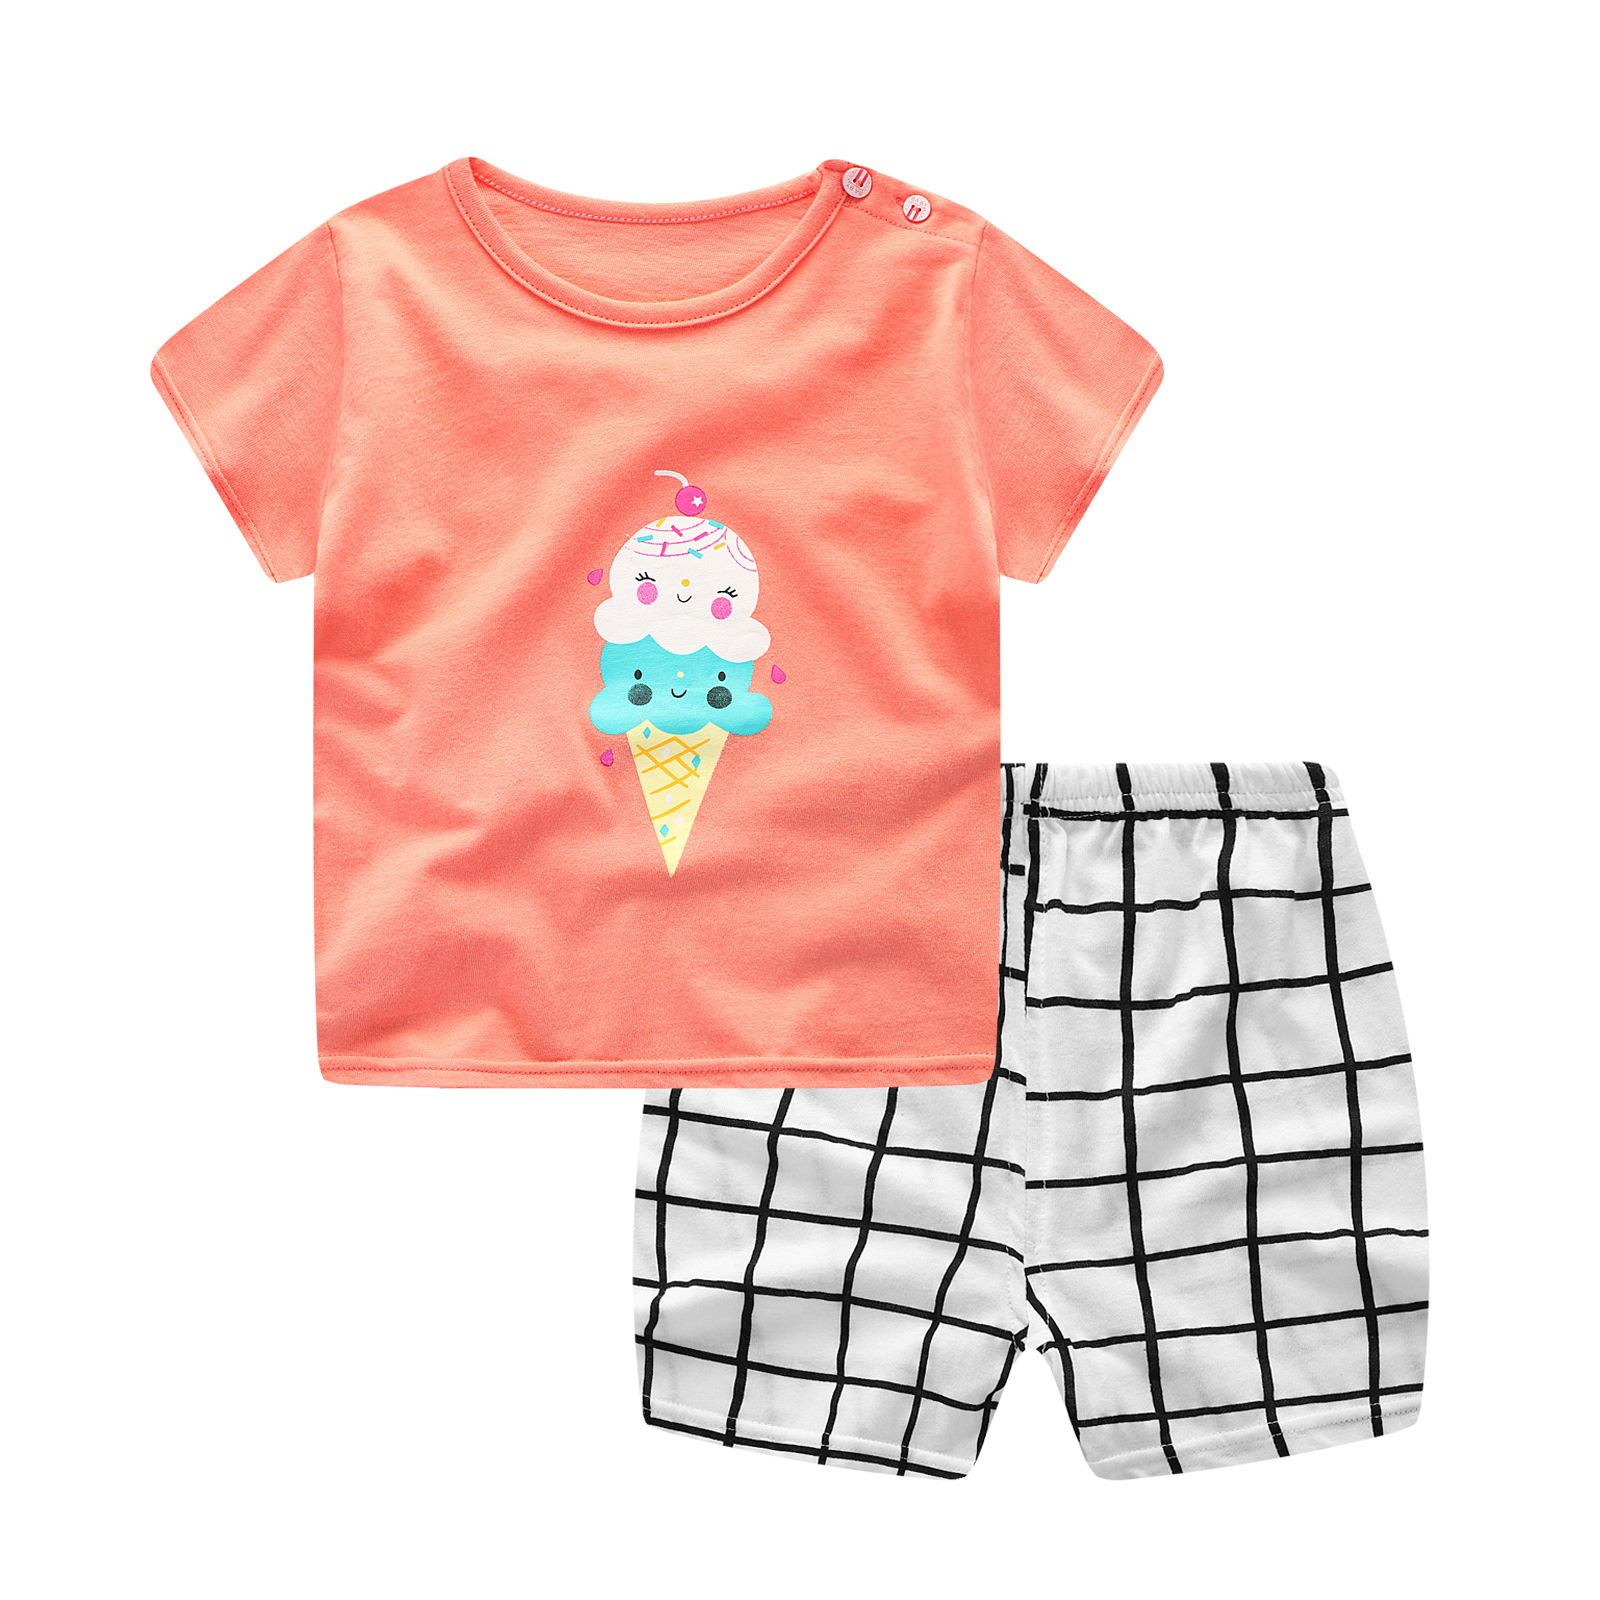 New Summer Baby Girls Clothing Sets Baby Girl Clothes Infant Cartoon Costume T-shirt Suit  Baby Outfit Newborn Baby Boy Clothes